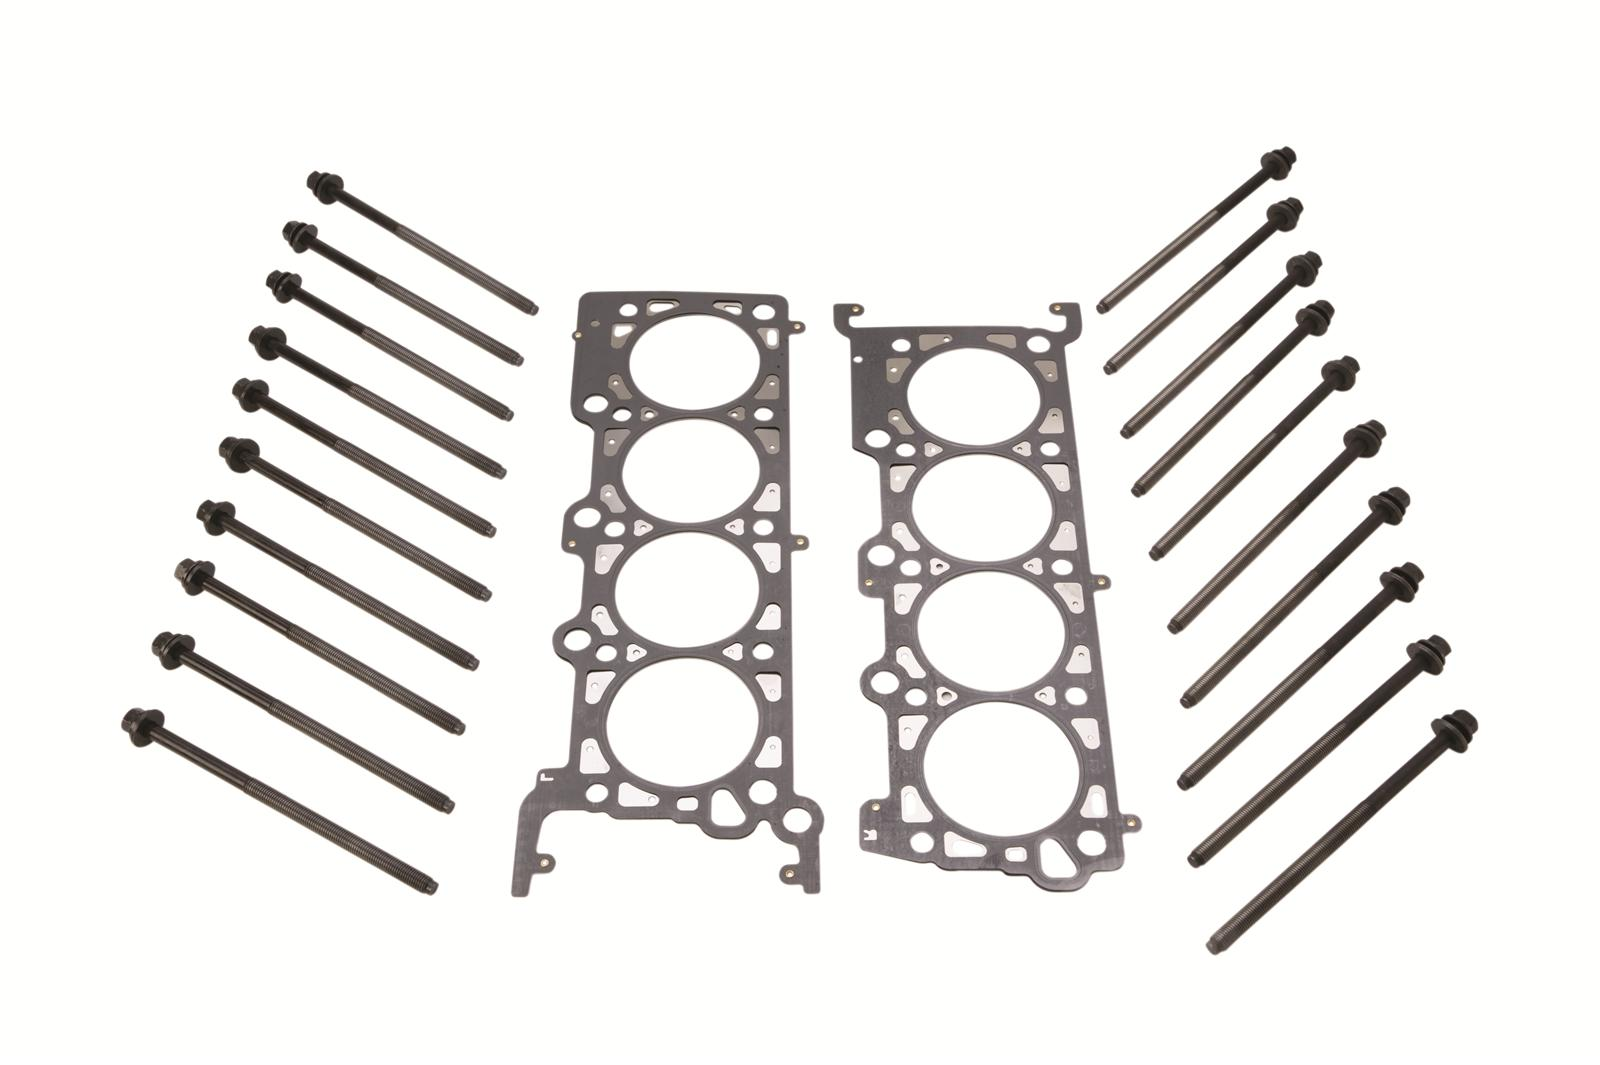 ford performance parts cylinder head changing kits m 6067 msvt 1930 Ford Speedster ford performance parts cylinder head changing kits m 6067 msvt free shipping on orders over 99 at summit racing